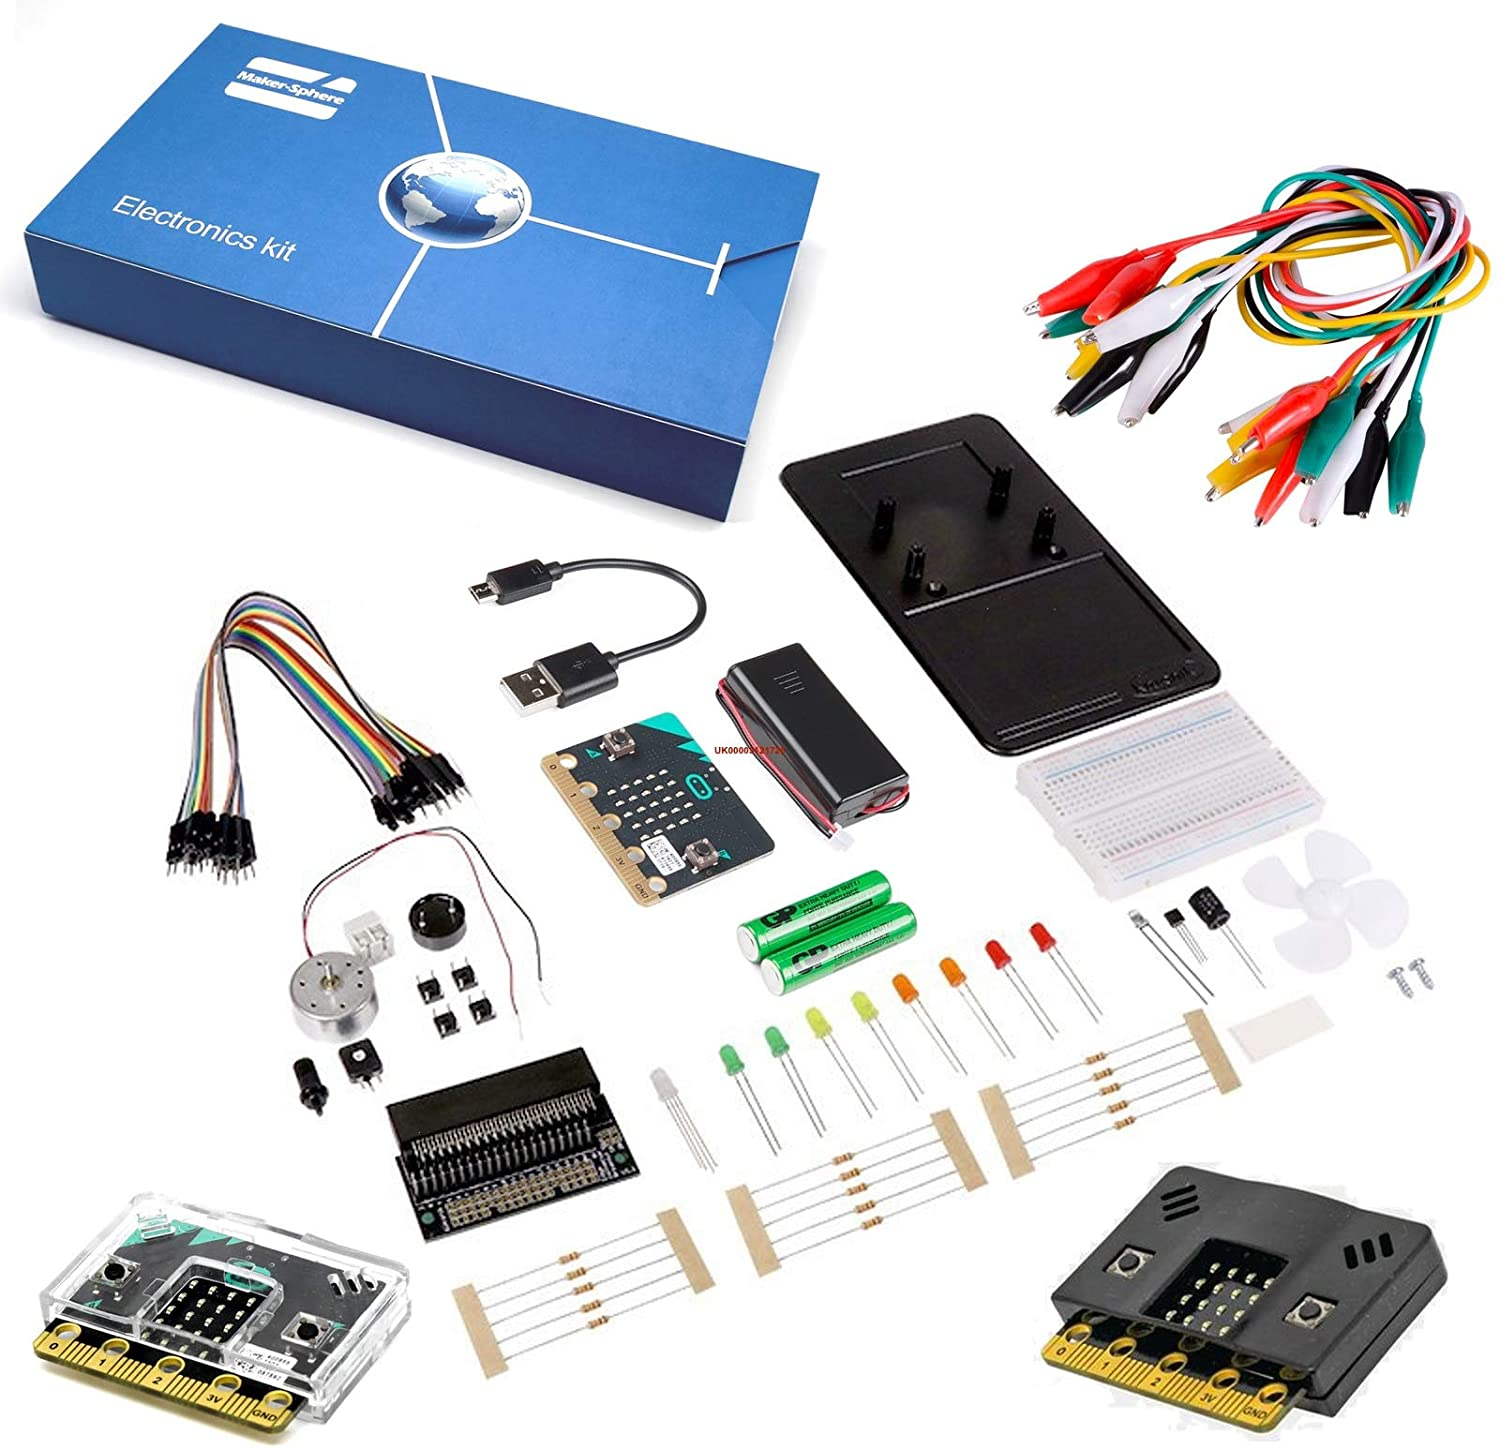 Maker-Sphere Inventors Kit for BBC Micro:bit with 10 Experiments Include BBC Micro:bit with Clear and Black Case, BBC Micro:bit Starter Kit